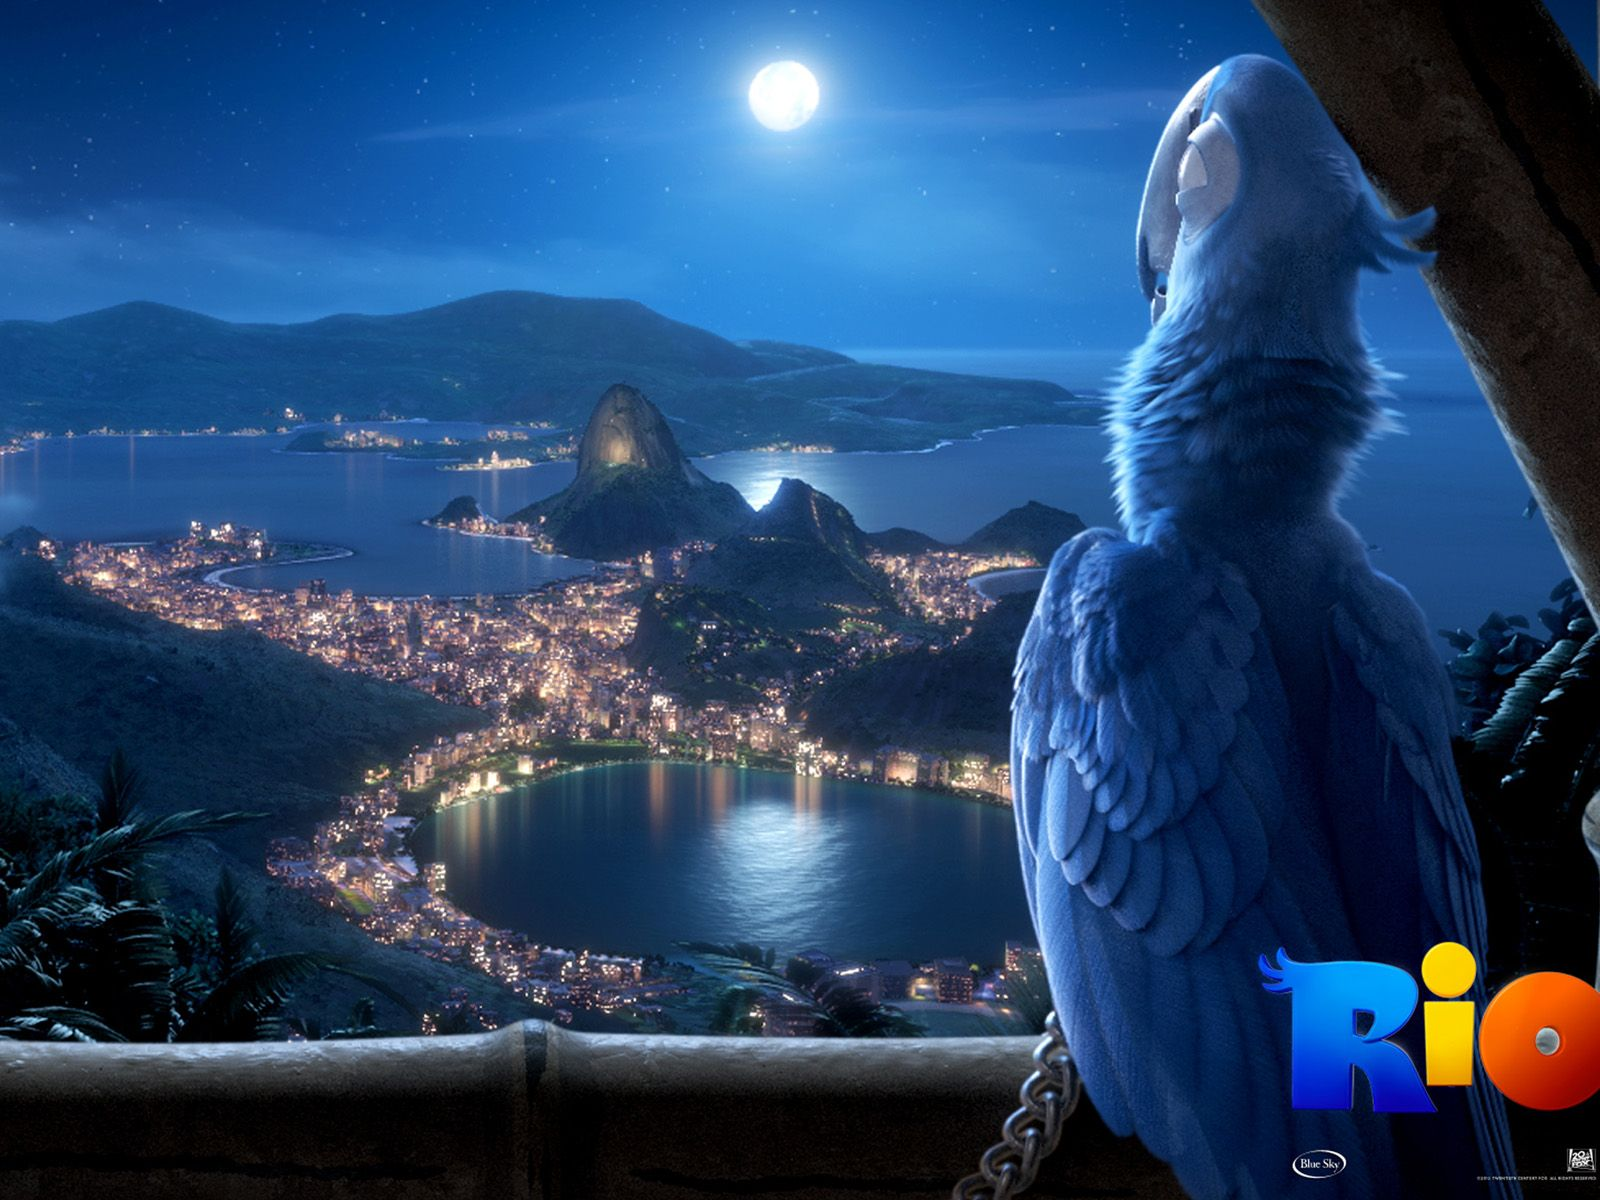 rio movie 1600x1200 wallpapers - movie wallpapers | rio | pinterest